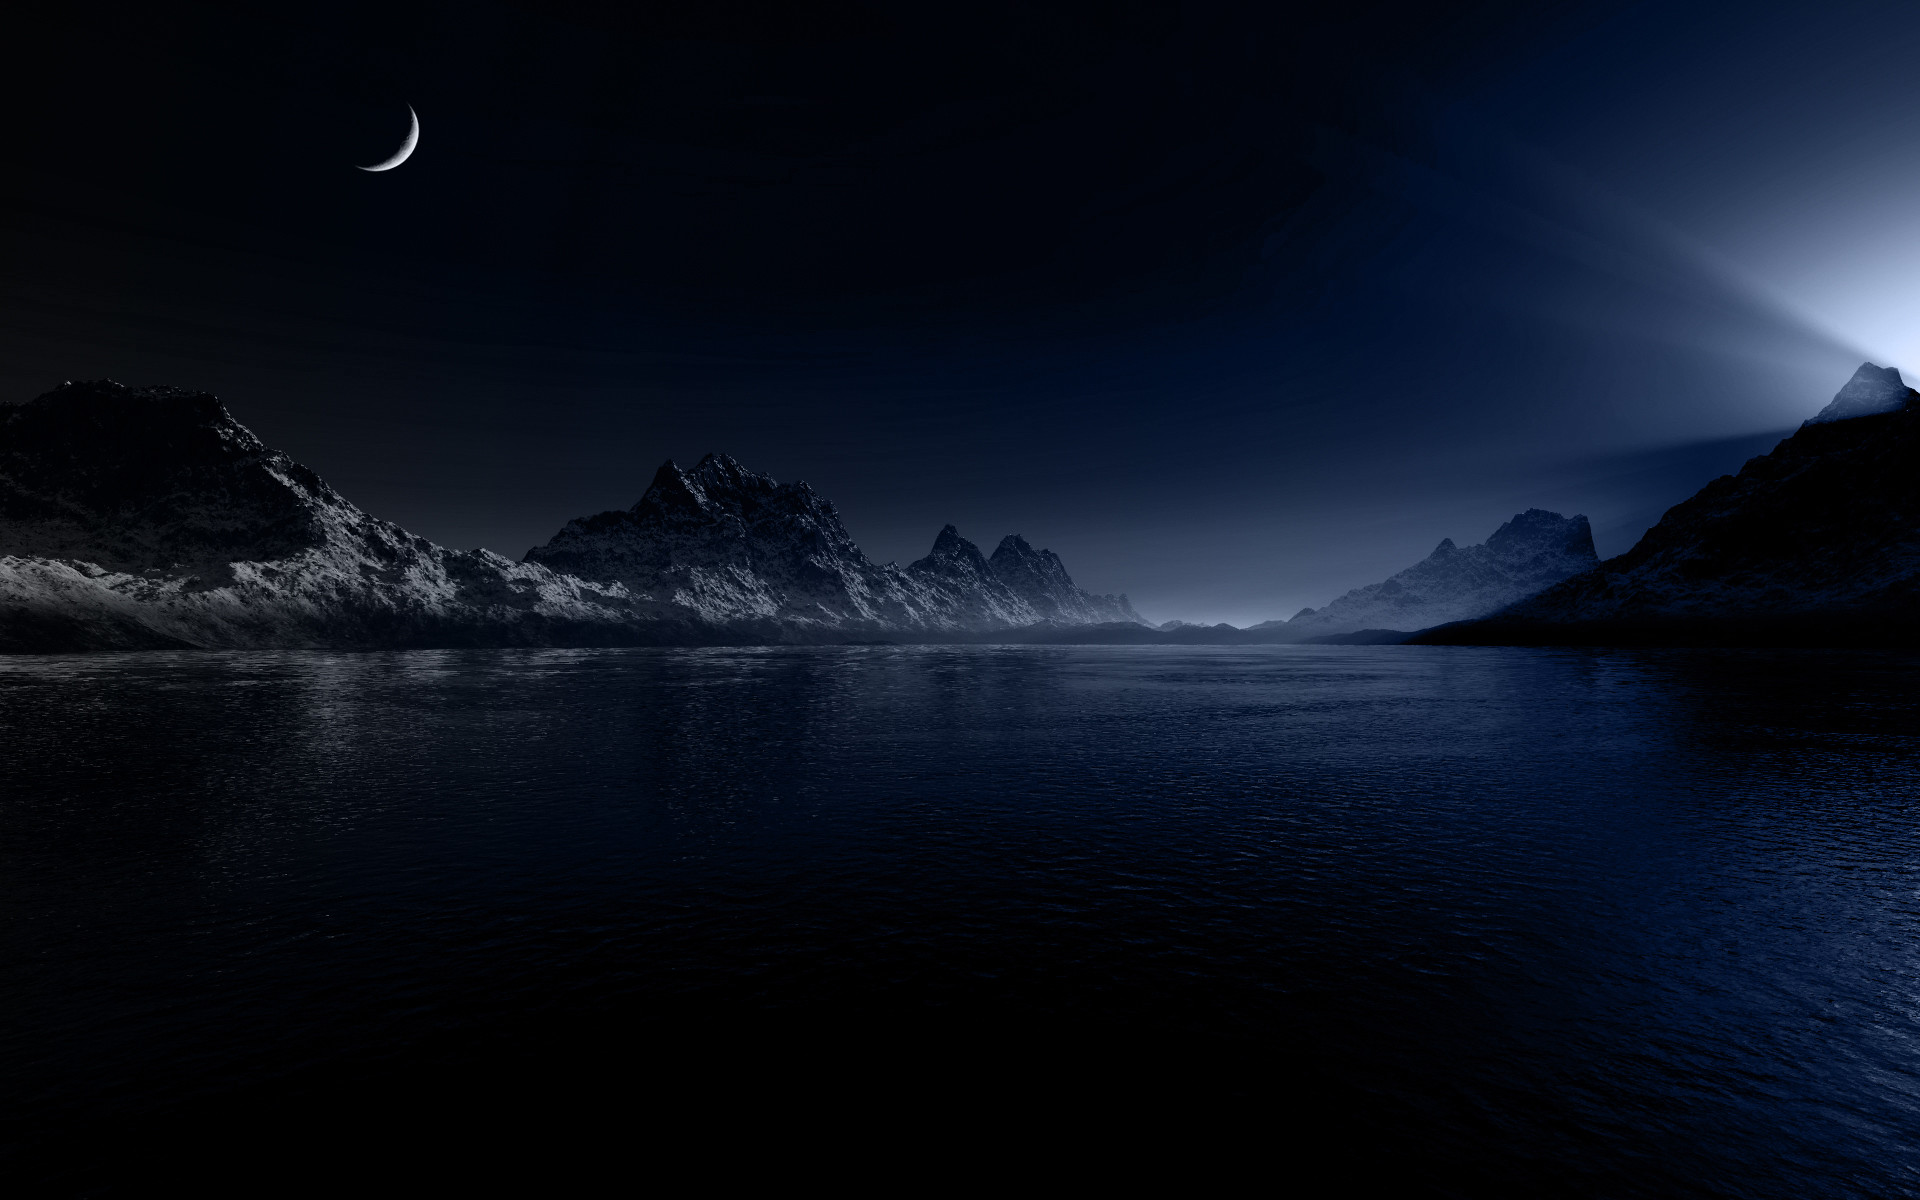 1920x1200 Landscapes Night Wallpaper 1920X1200 Landscapes, Night, ...